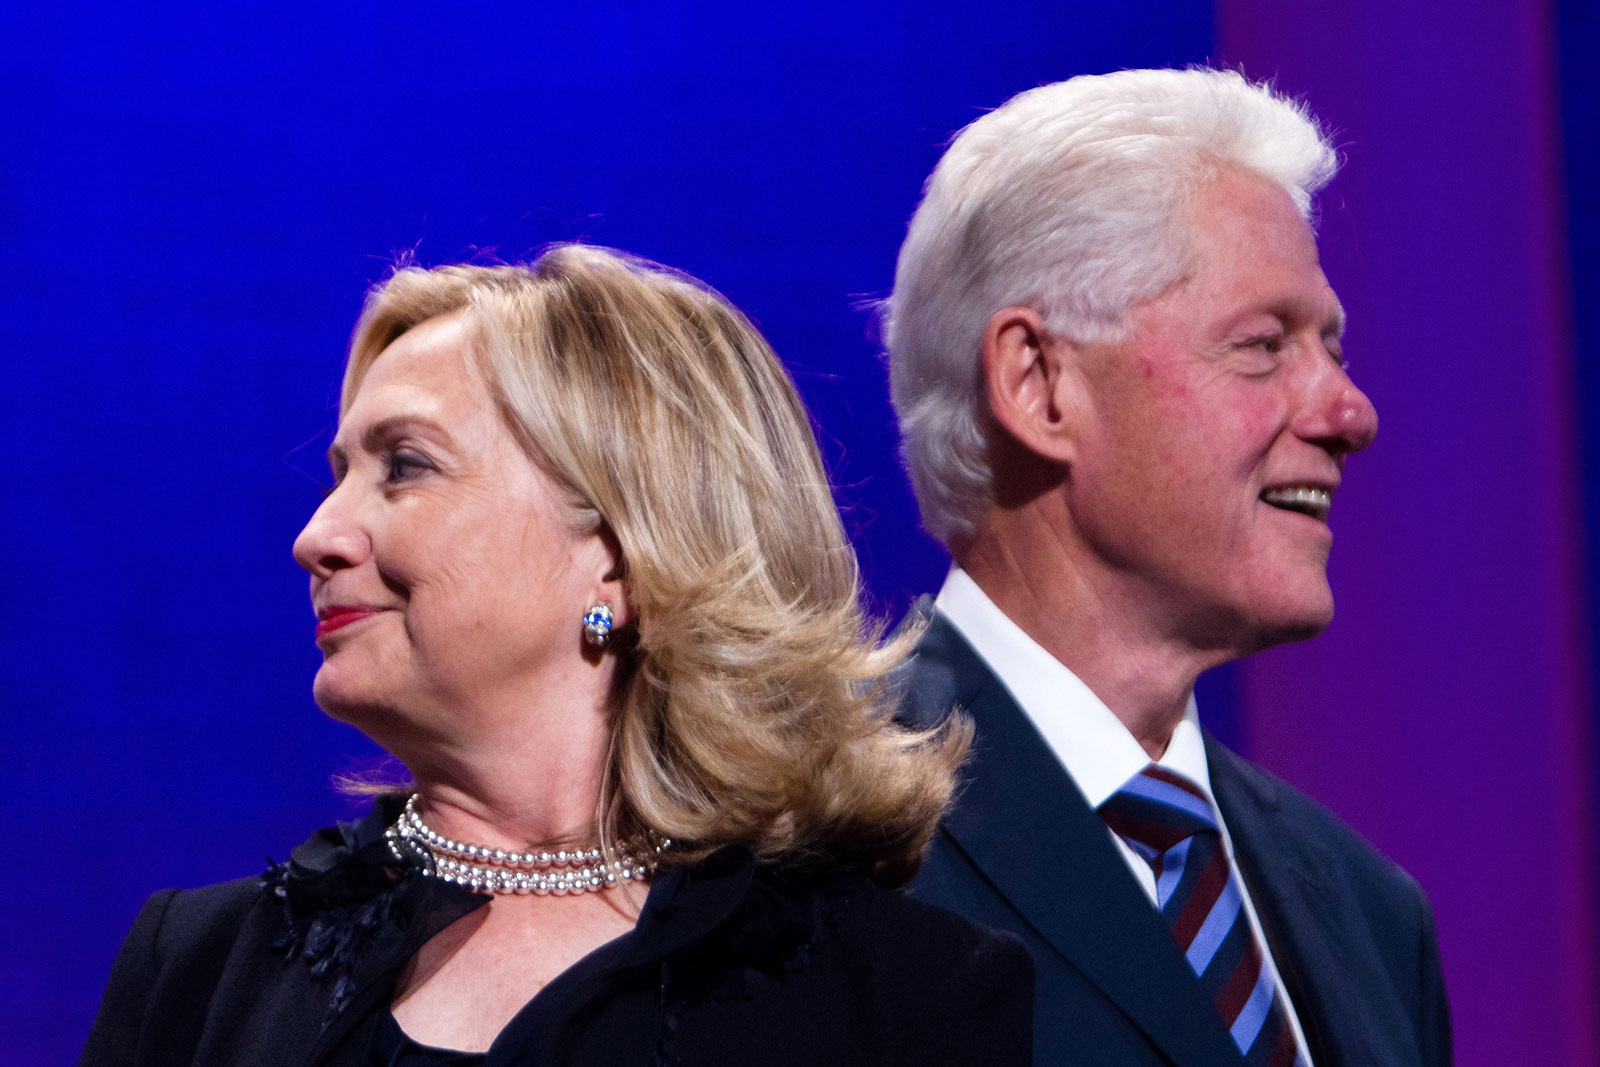 Hillary Rodham Clinton and Bill Clinton during the seventh annual meeting of the Clinton Global Initiative (CGI), New York City, September 22, 2011